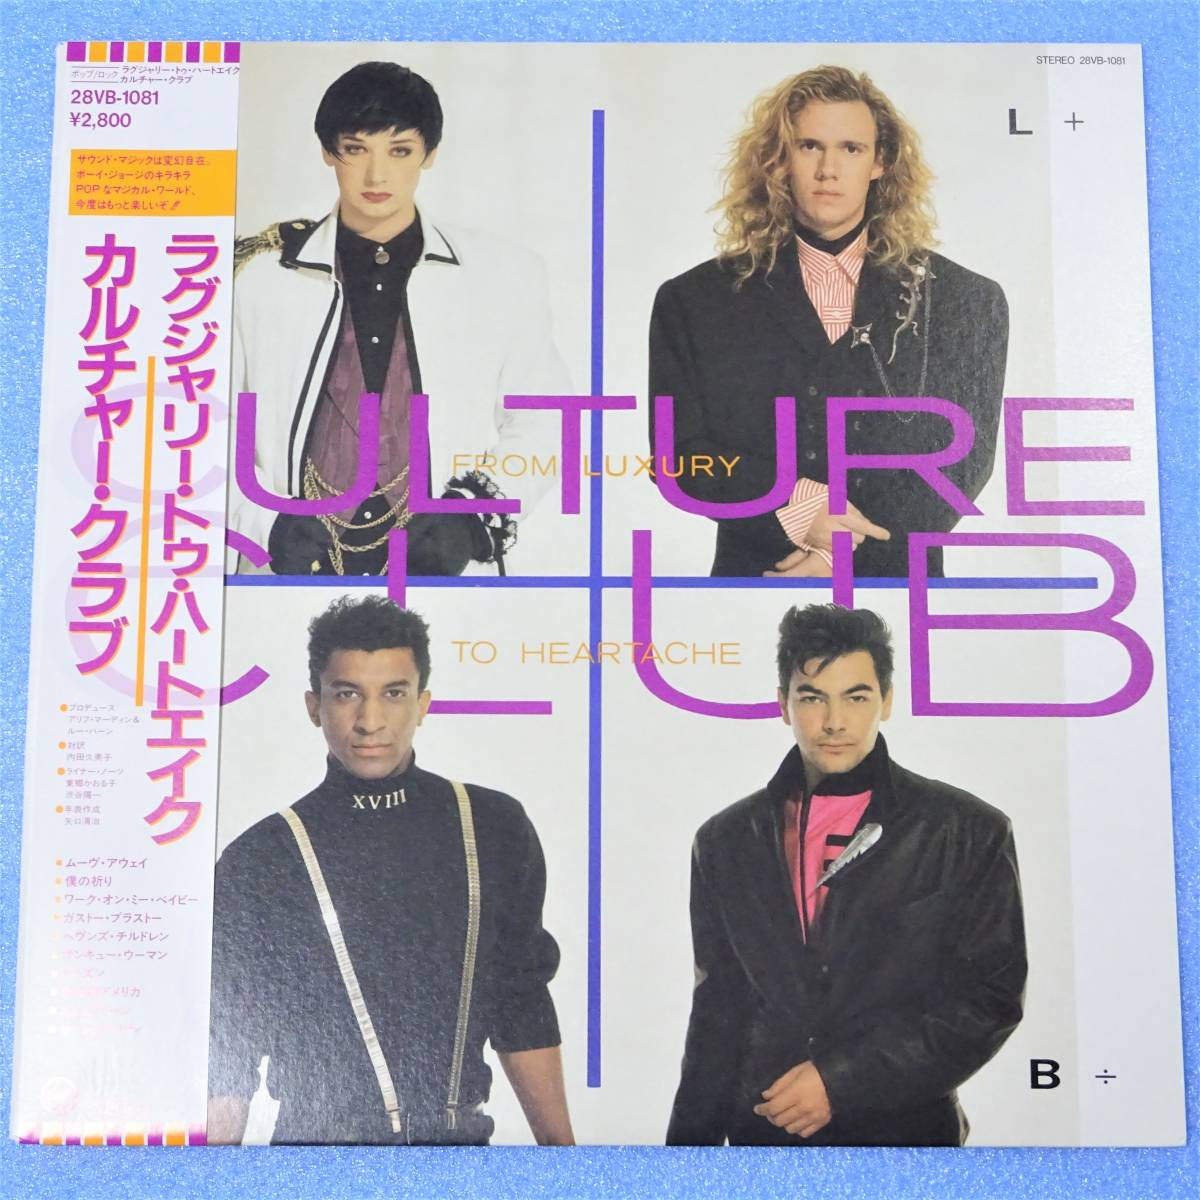 12' LP カルチャー・クラブ / ラグジャリー・トゥ・ハートエイク CULTURE CLUB / FROM LUXURY TO HEARTACHE 国内盤 1986年_画像1